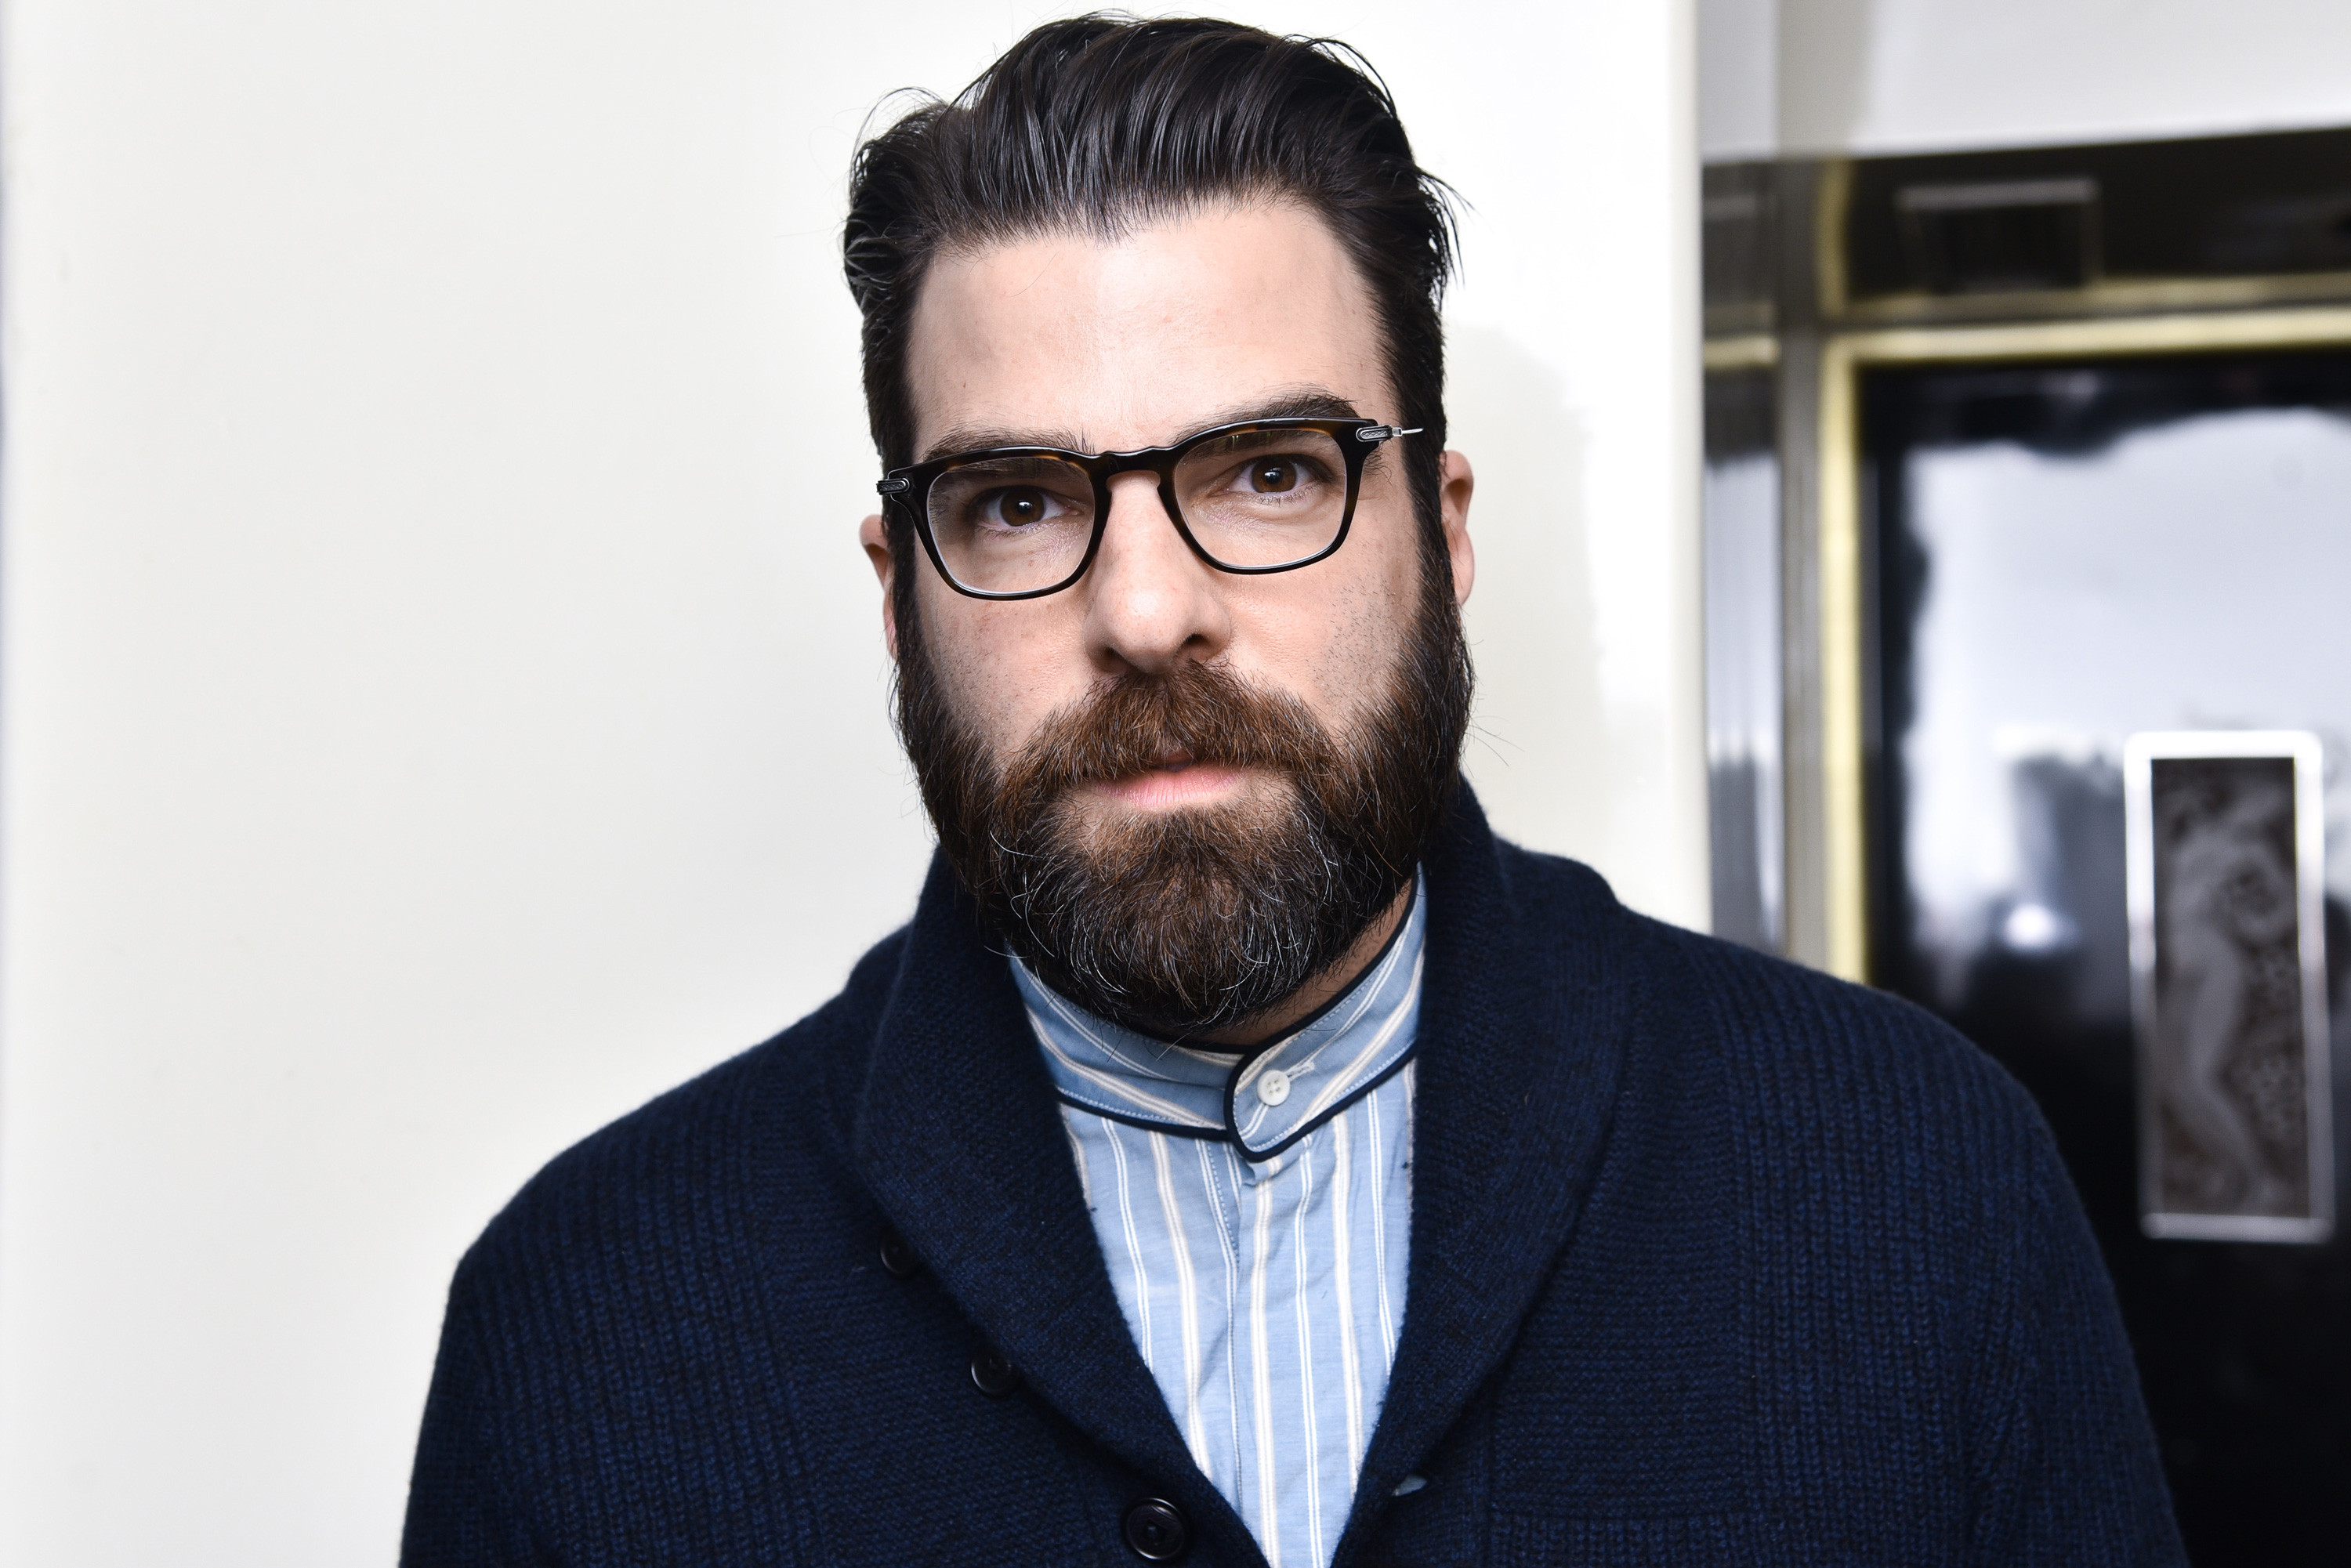 3000x2001 - Zachary Quinto Wallpapers 26